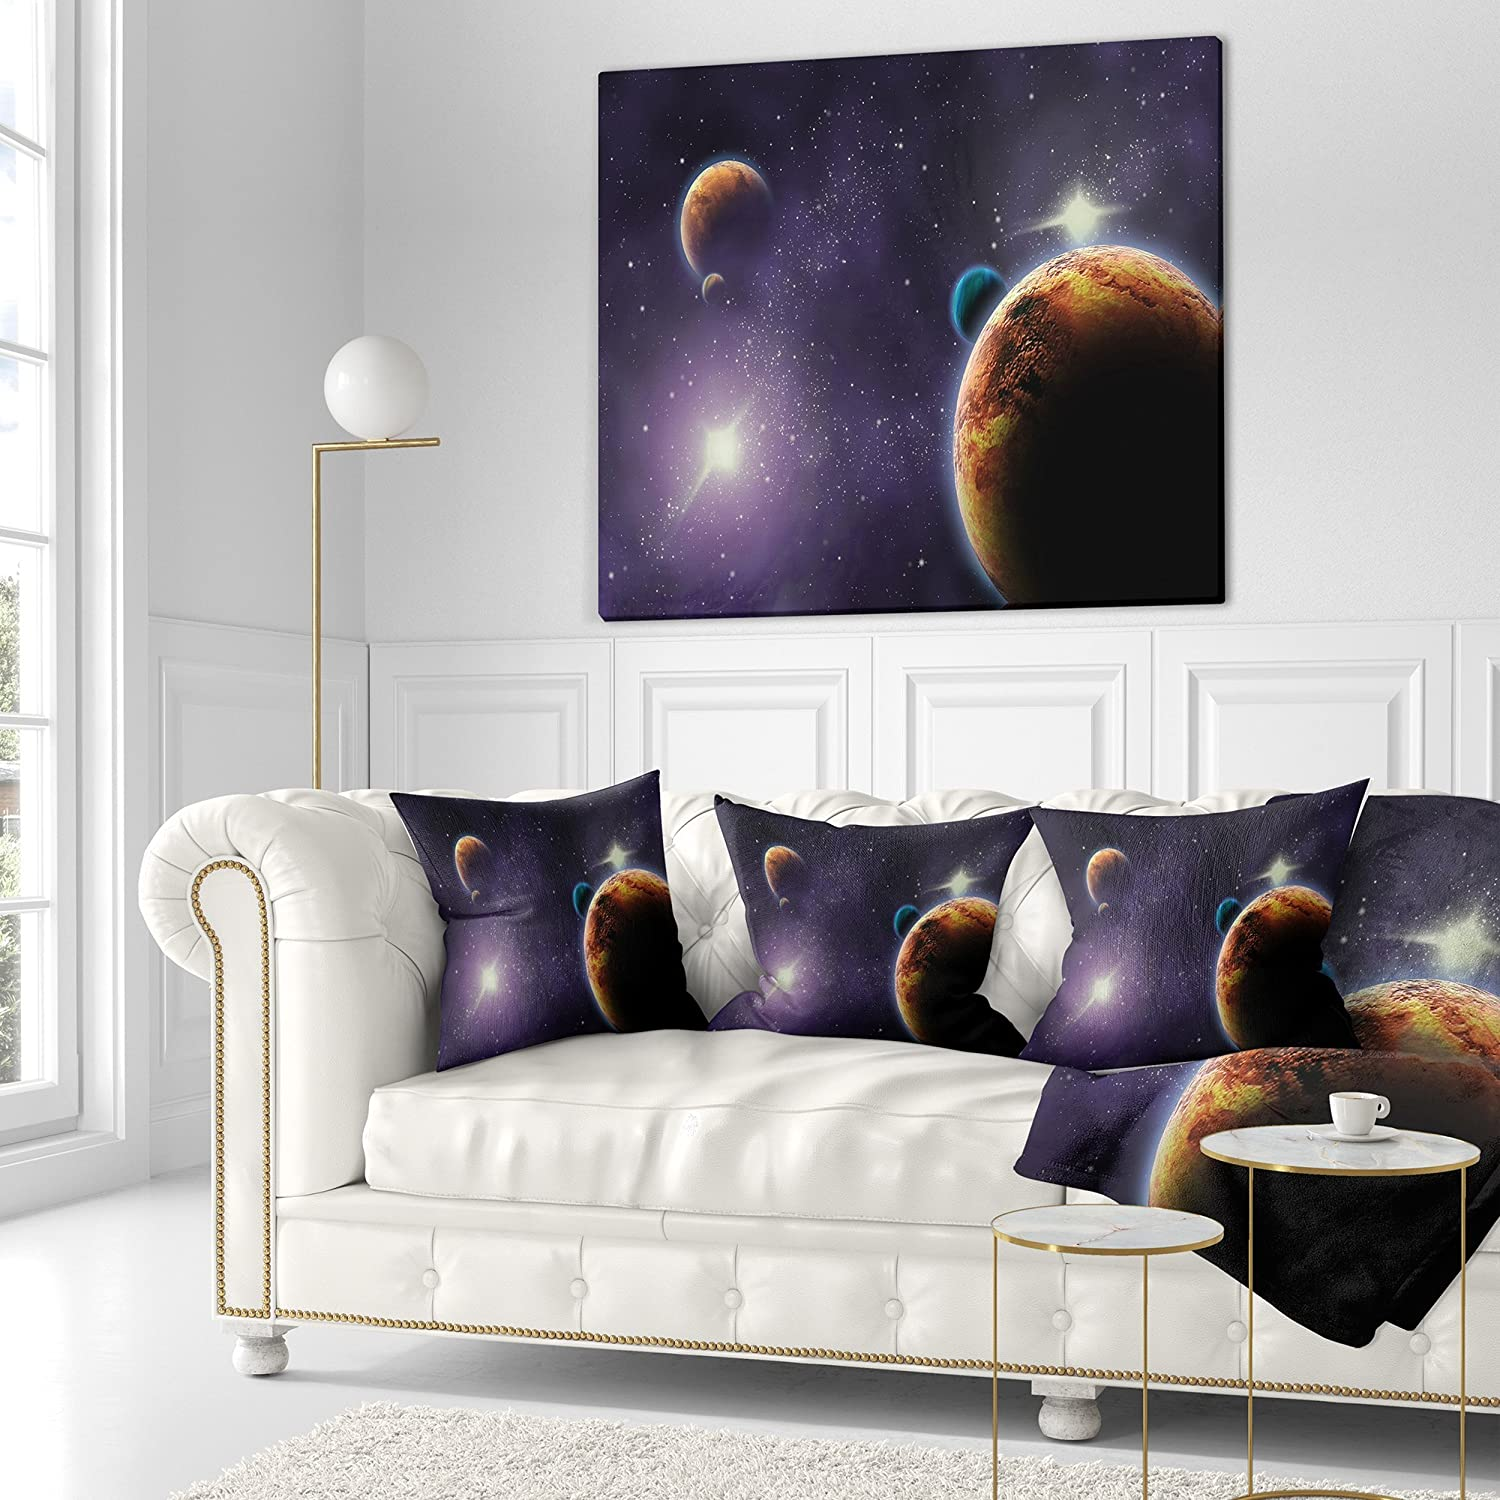 Sofa 18 in x 18 in. Designart CU6721-18-18 Planets in Deep Dark Space Contemporary Throw Cushion Pillow Cover for Living Room